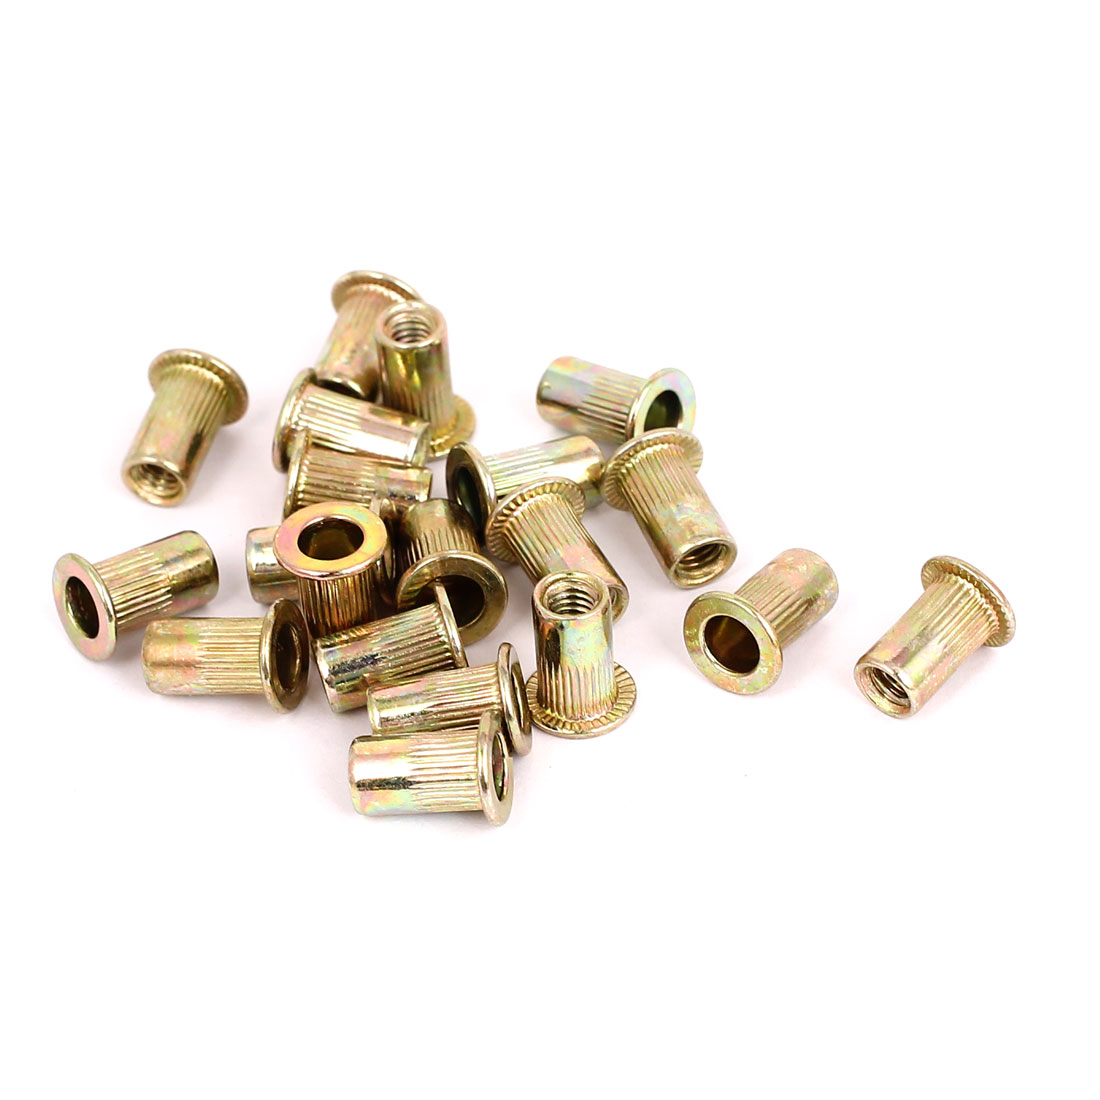 20pcs M4 Countersunk Head Open End Blind Threaded Rivet Nut Nutserts